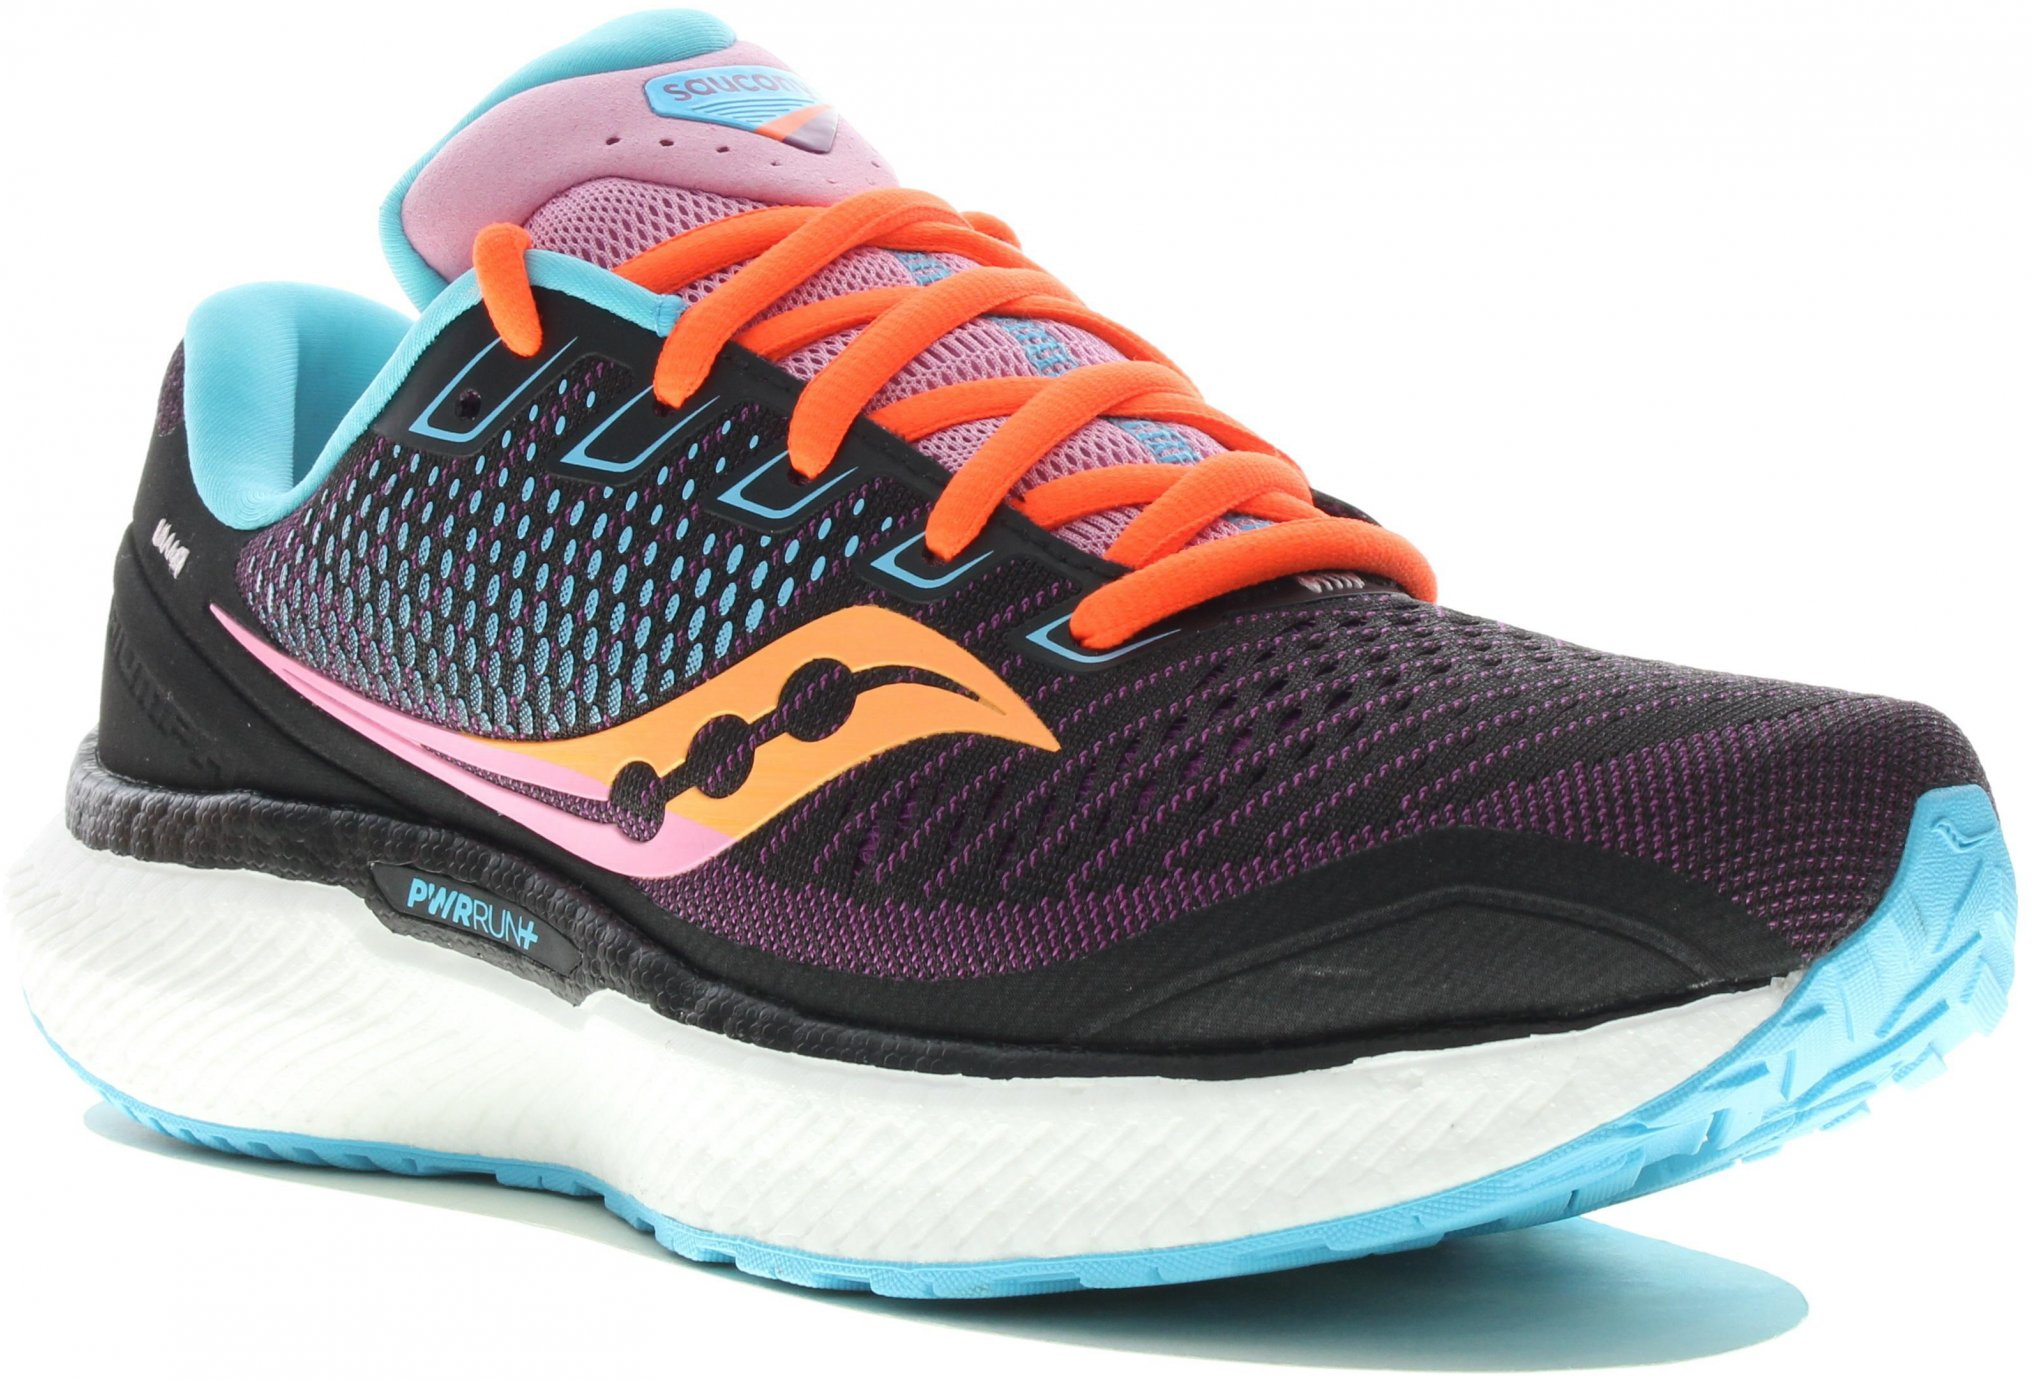 Saucony Triumph 18 Bright Future Black W Chaussures running femme